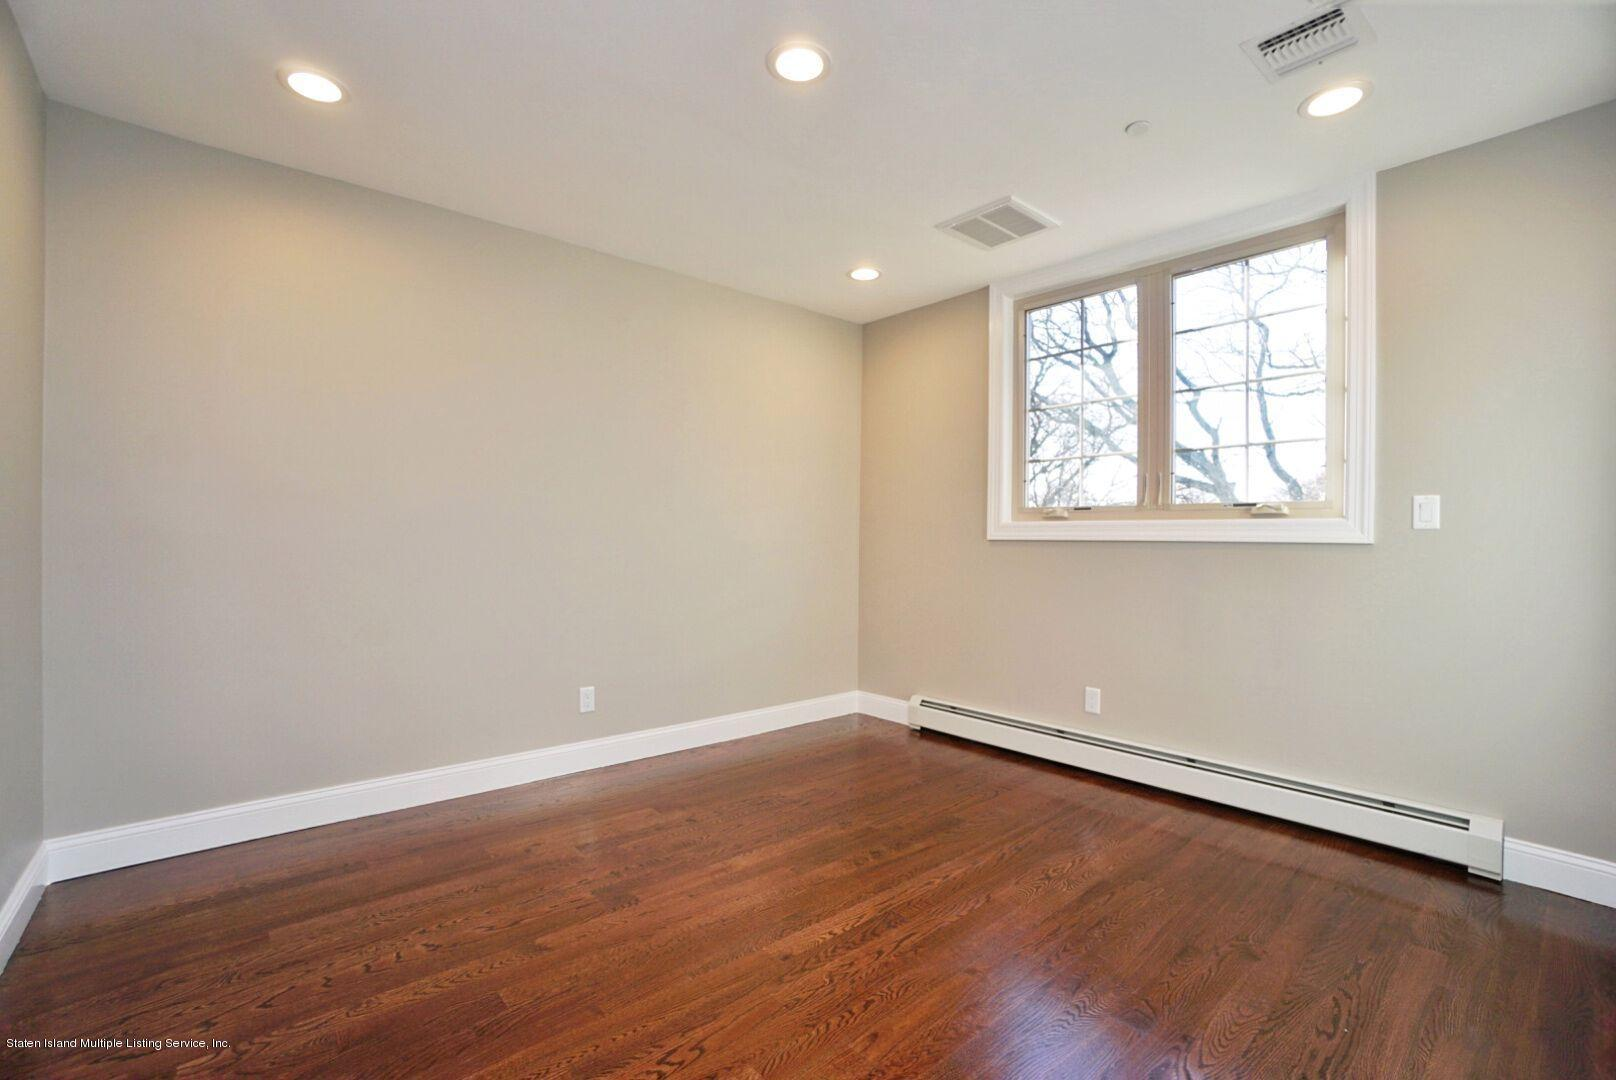 Single Family - Detached 165 Woolley Avenue  Staten Island, NY 10314, MLS-1128875-42